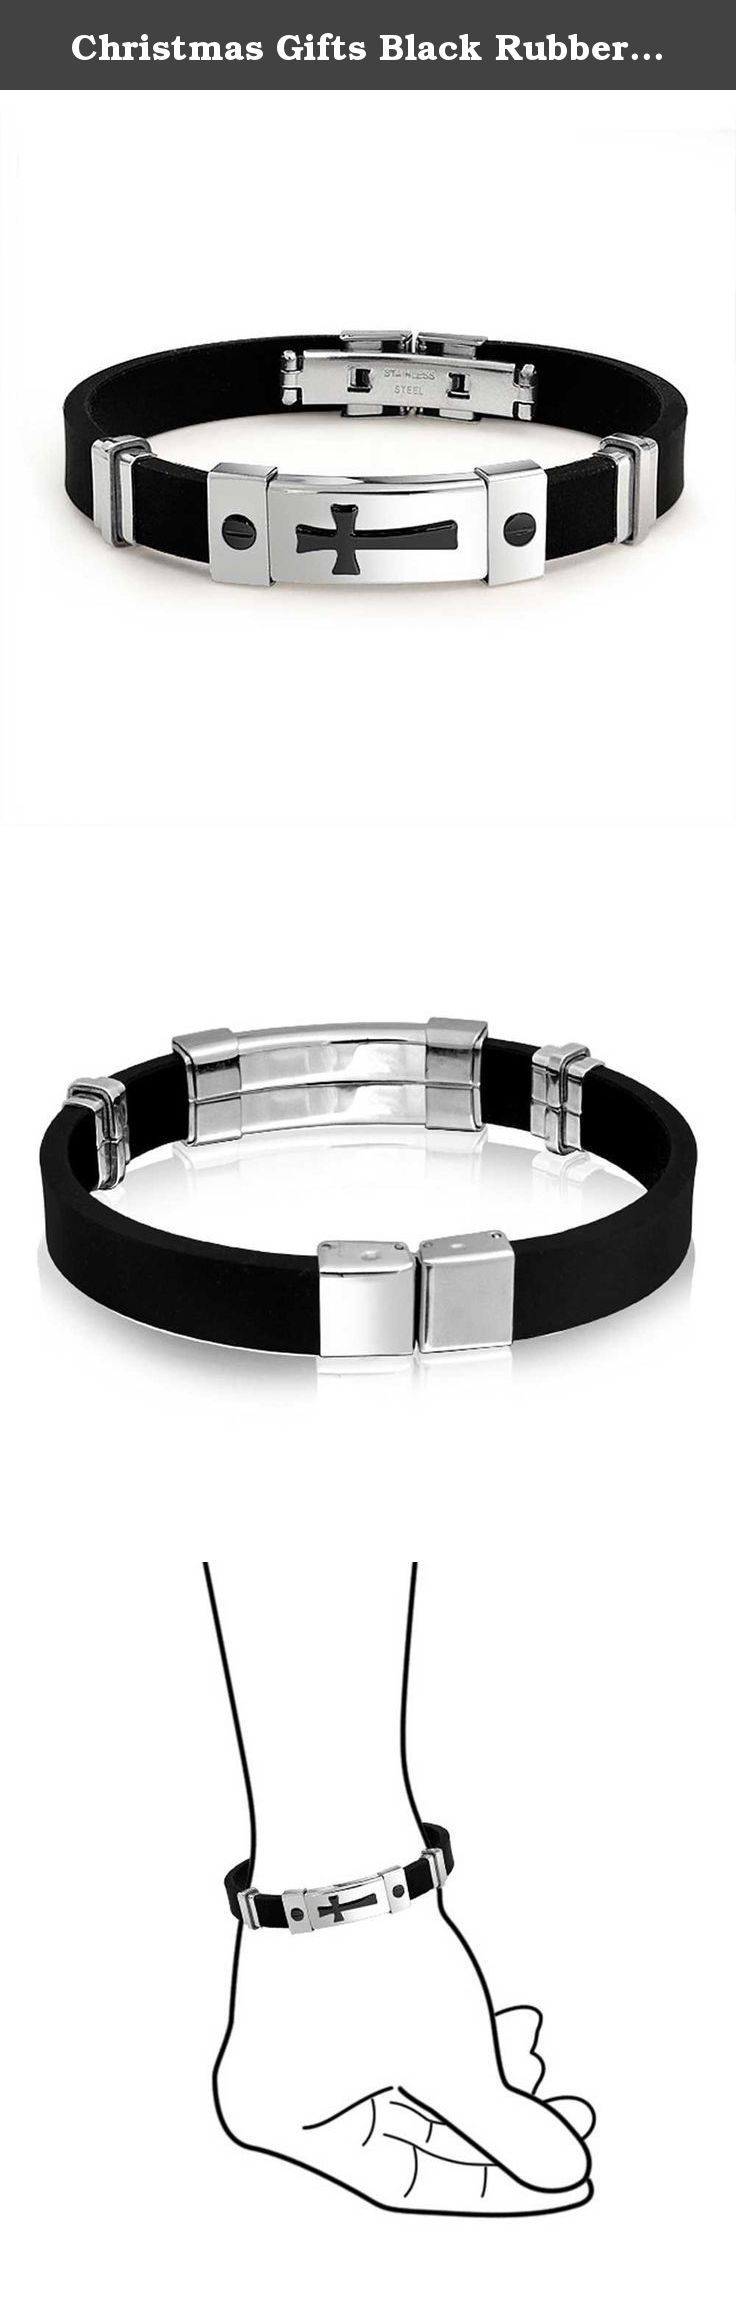 Christmas Gifts Black Rubber Stainless Steel Mens Sideways Cross ID Bracelet. If you are looking for a great, new piece of cross jewelry to help show off your faith in style, you have come to the right place. With stainless steel accents, our sideways cross bracelet is made with black IP plating, to give it a lovely two toned look you will love. Because it is made of rubber, our stainless steel ID bracelet is very lightweight, smooth and comfortable on your wrist. Buy one of our black…